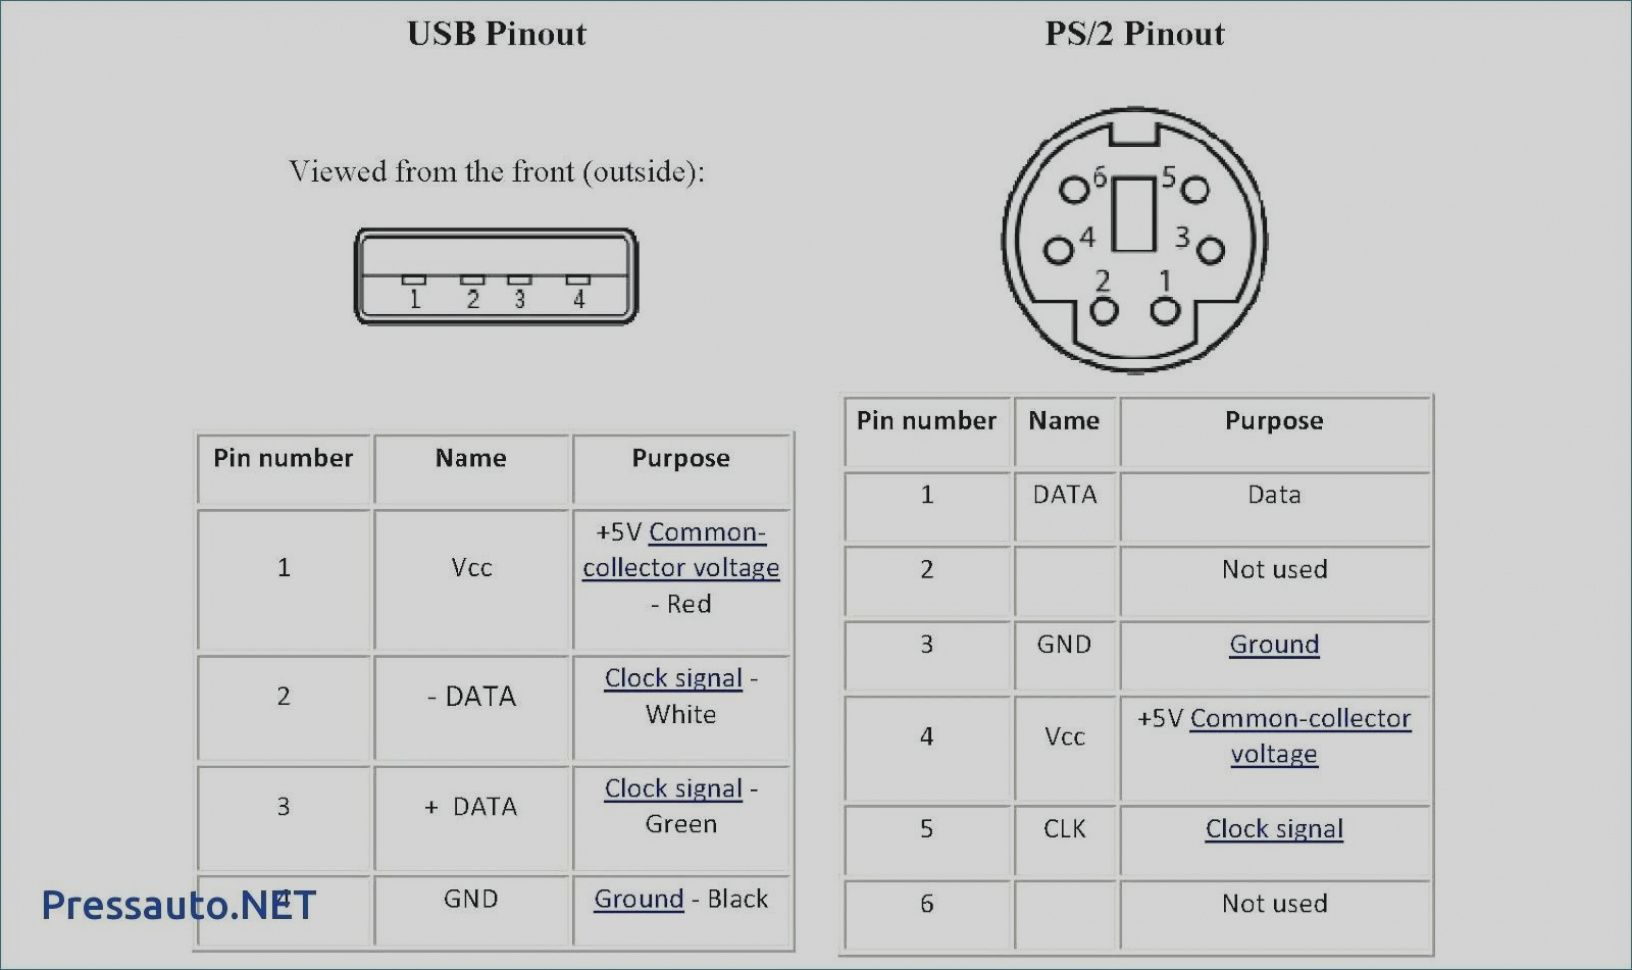 Wonderful Ps2 To Usb Wiring Diagram Ps 2 Keyboard Solved Computer With  Mouse | Circuito, Electrónica | Ps2 To Usb Wire Diagram |  | Pinterest